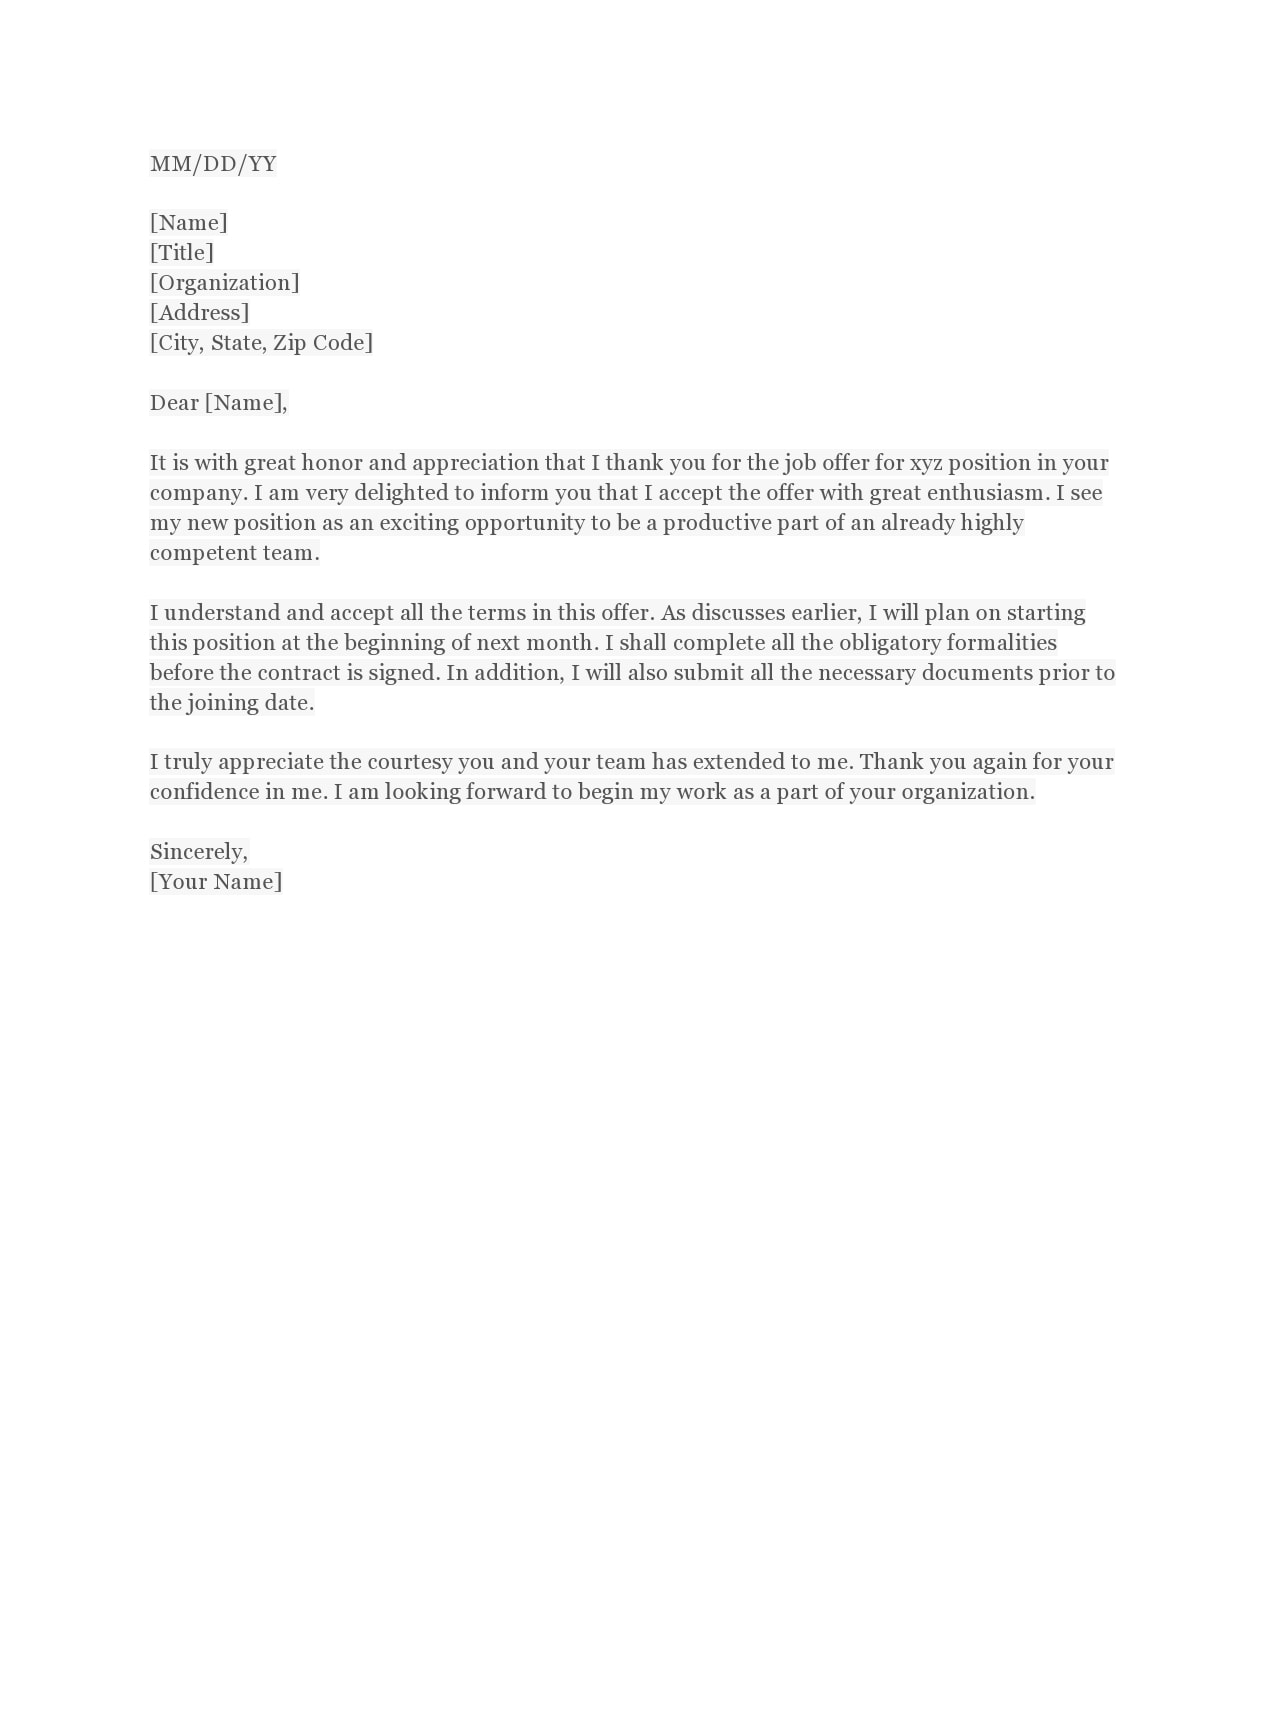 thank you letter for job offer 23